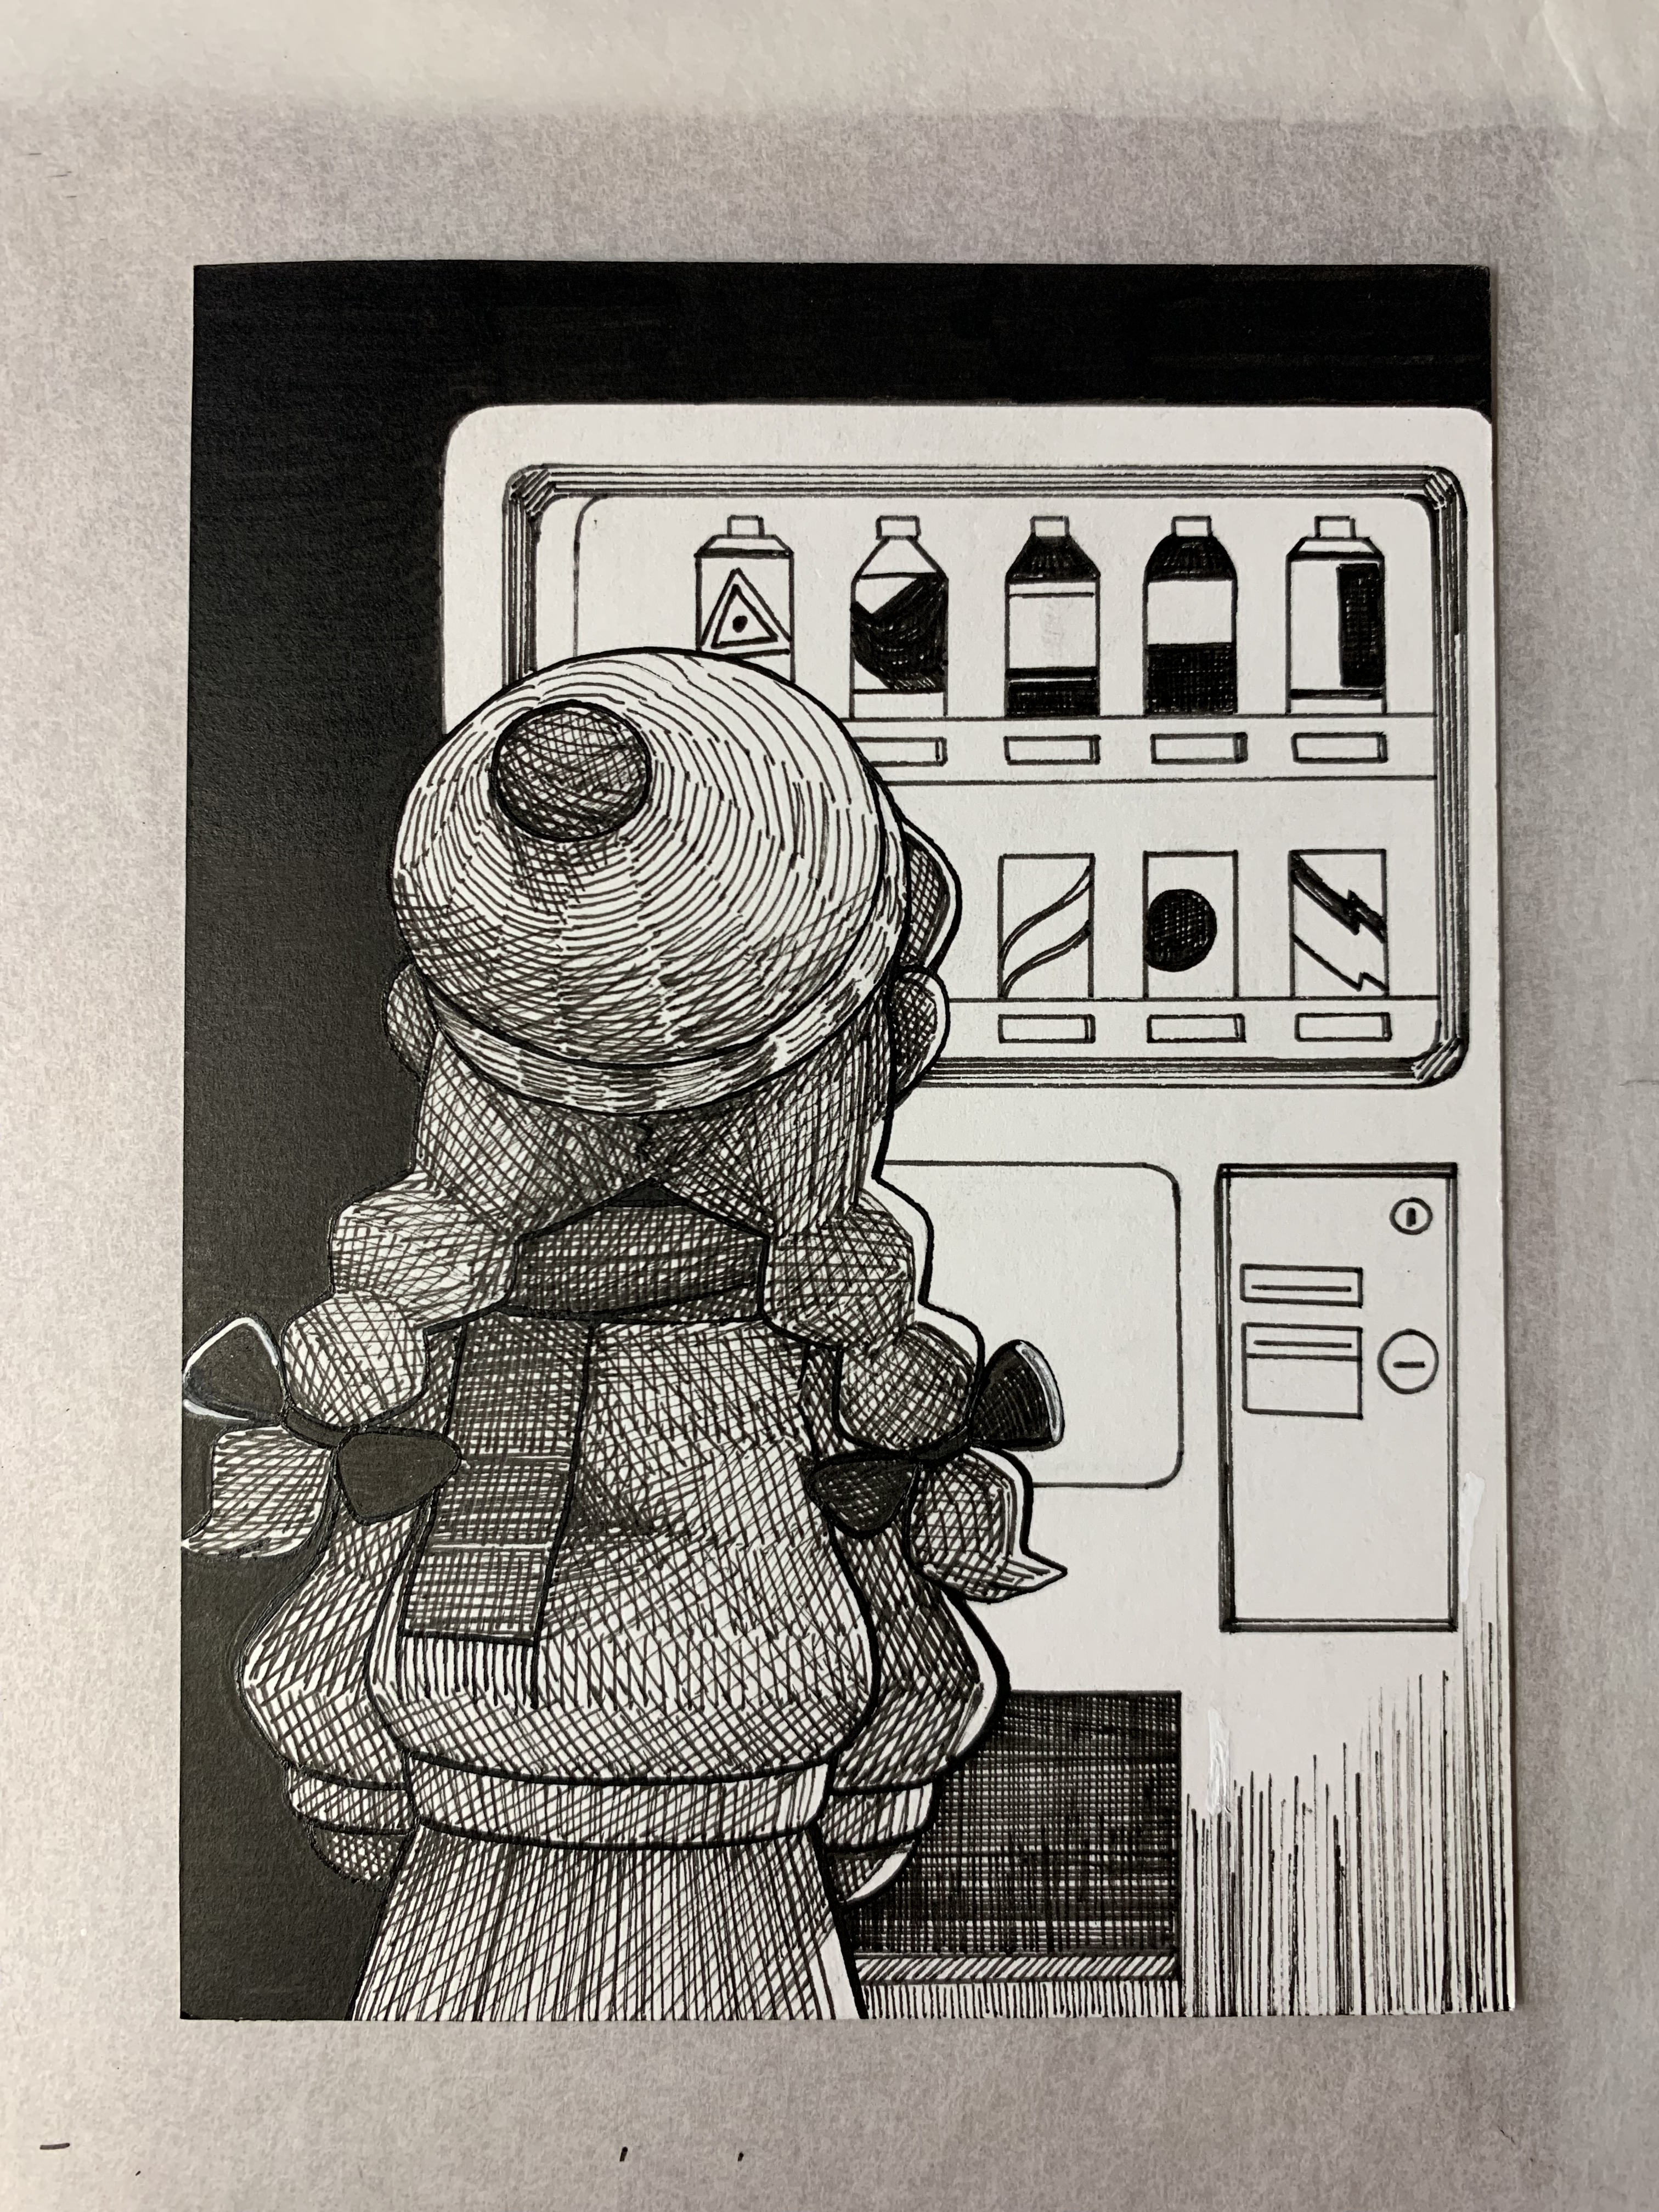 Inktober 2019 - No. 8 - Hat and Scarf